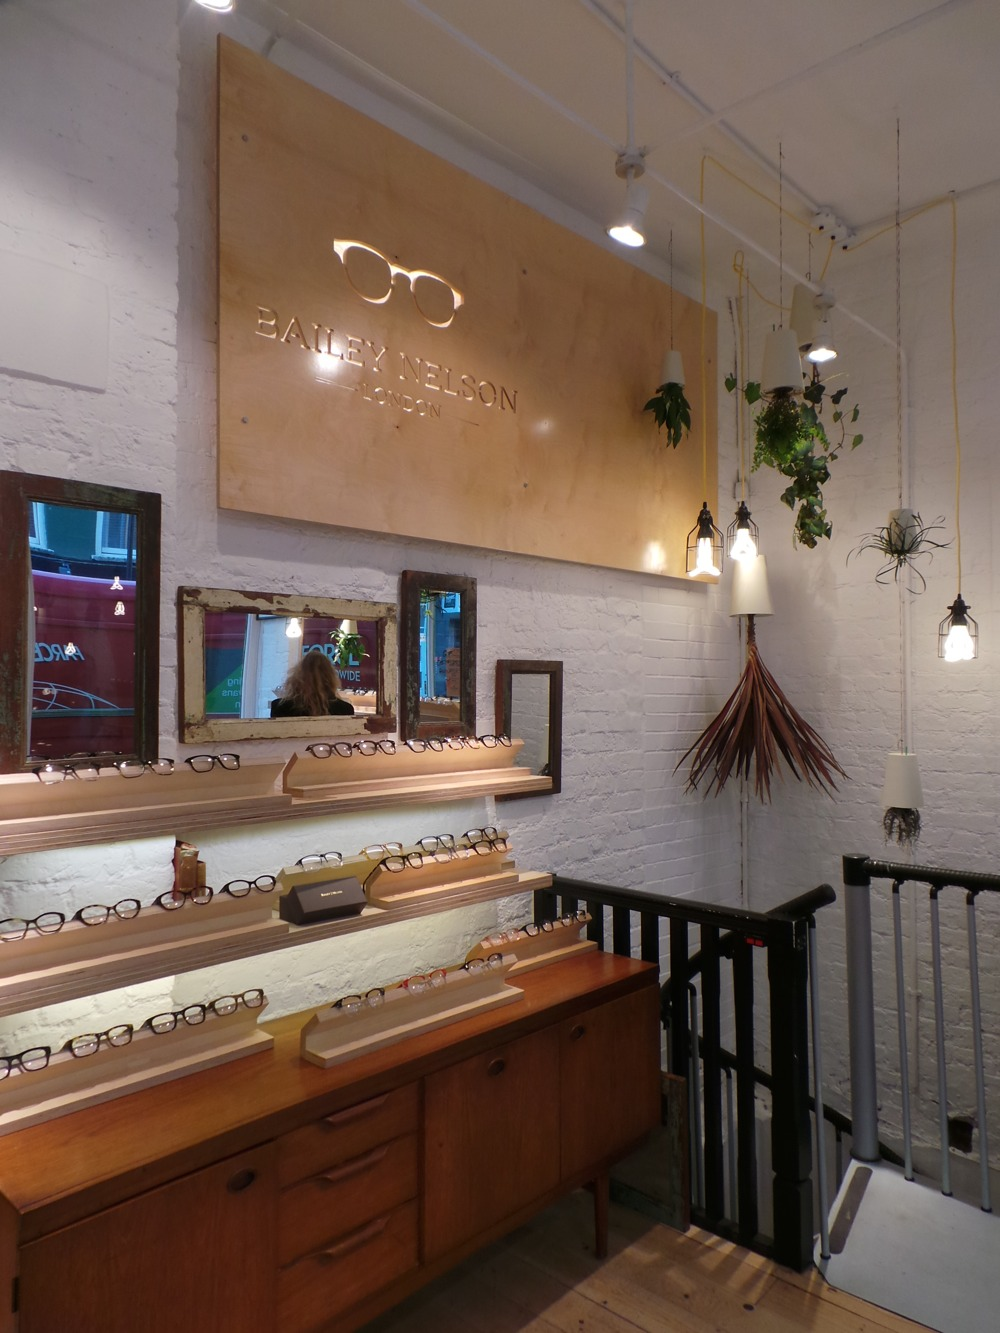 Bailey Nelson Eyewear - Covent Garden Shop